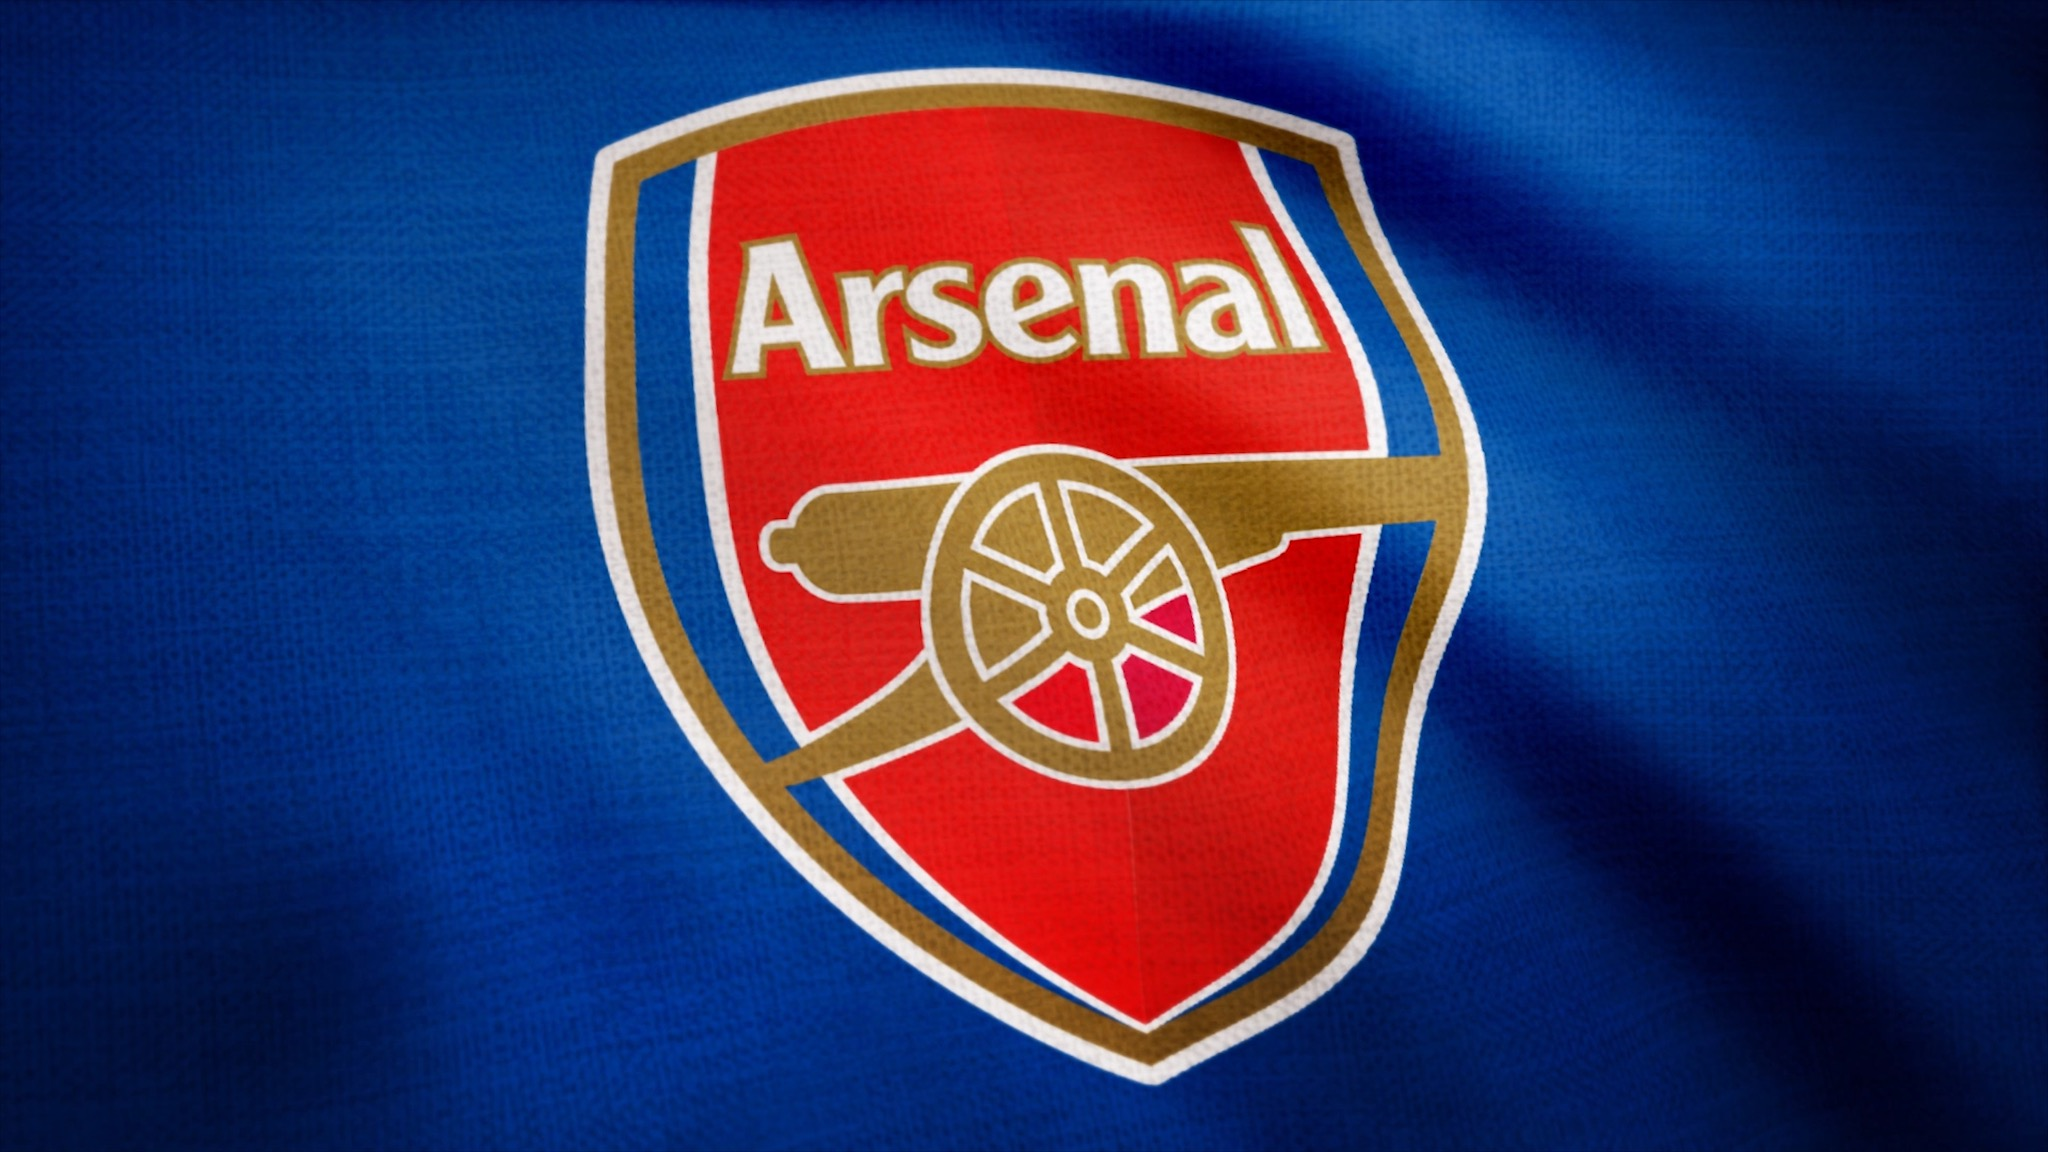 adidas issues apology after arsenal kit